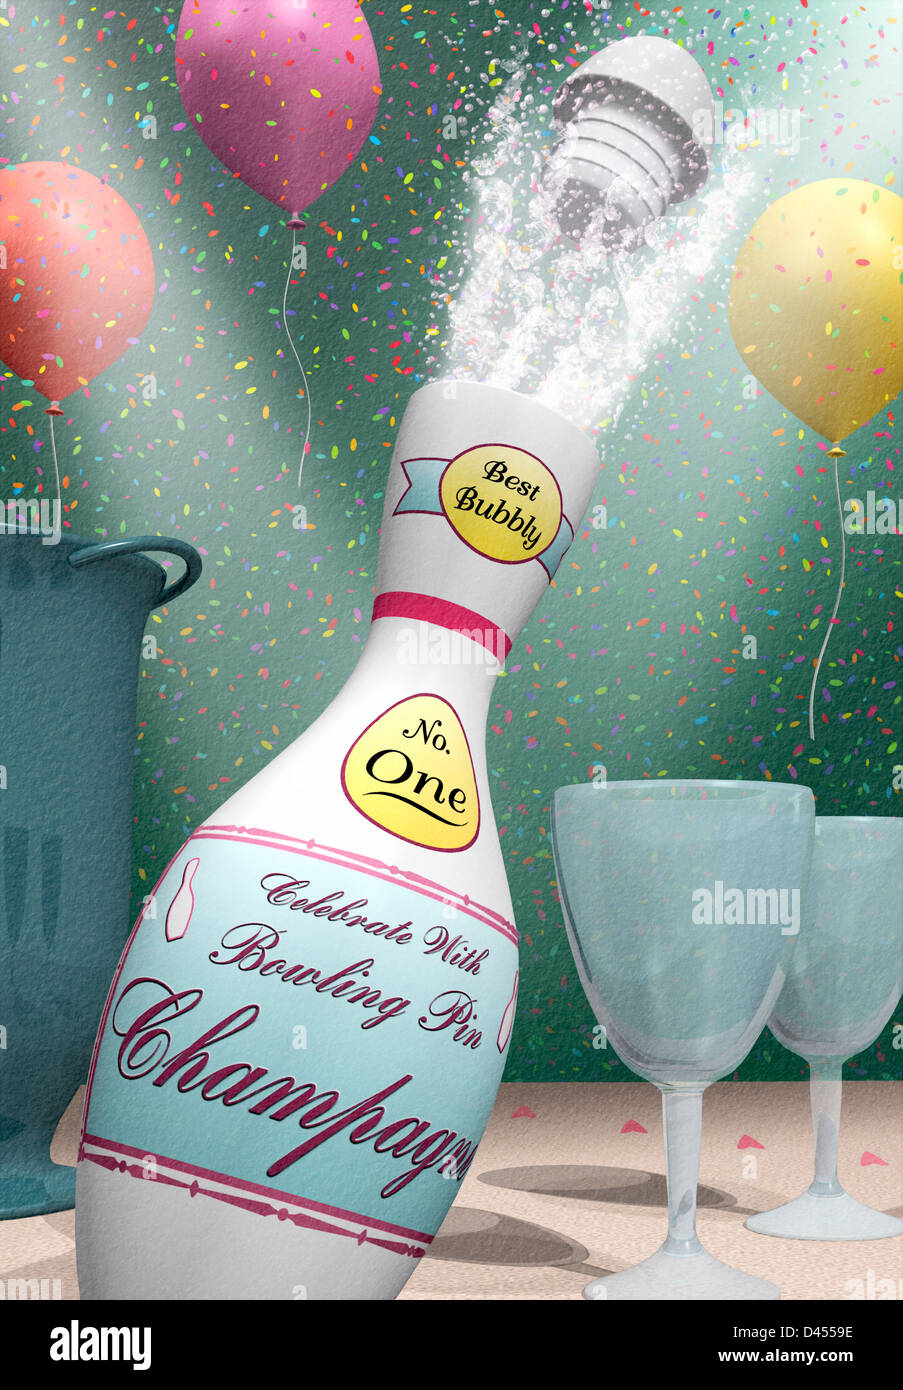 Bowling pin balloons - Stock Photo Stop Action Illustration Of A Bowling Pin Champagne Bottle Shooting Bubbly With Glasses Confetti And Balloons In Celebration